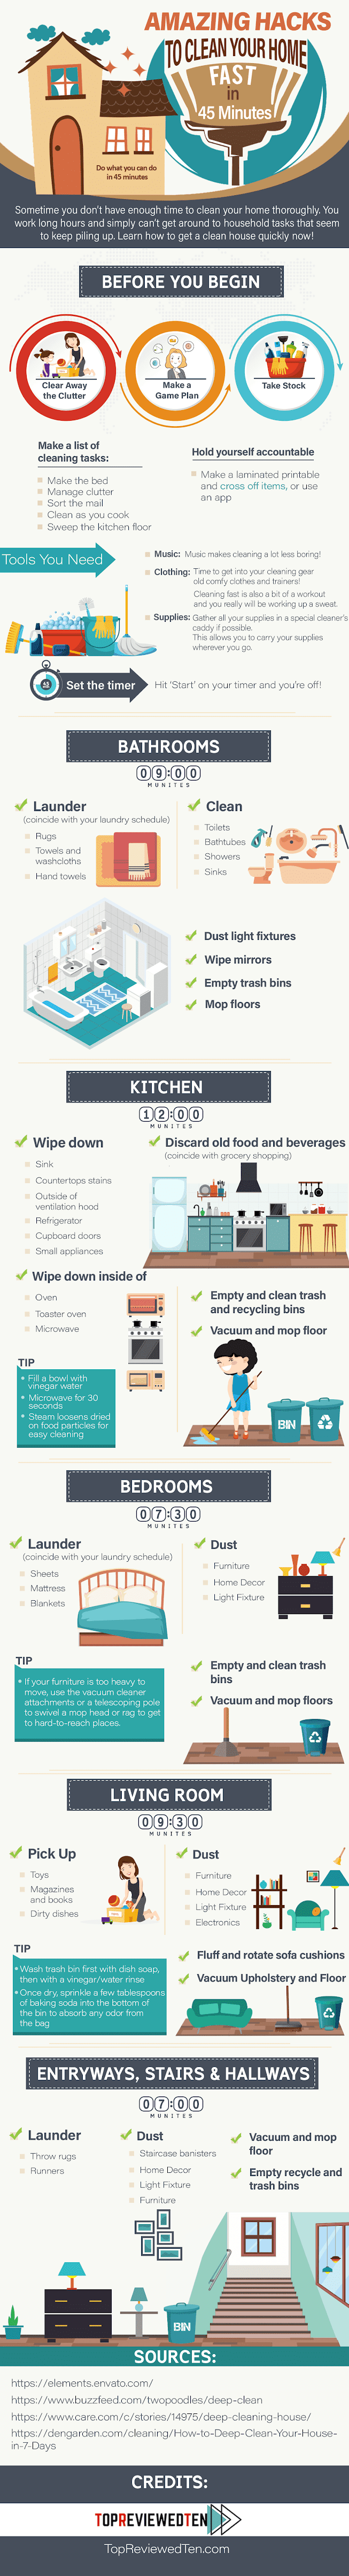 Amazing Hacks To Clean Your Home Fast in 45 Minutes #infographic